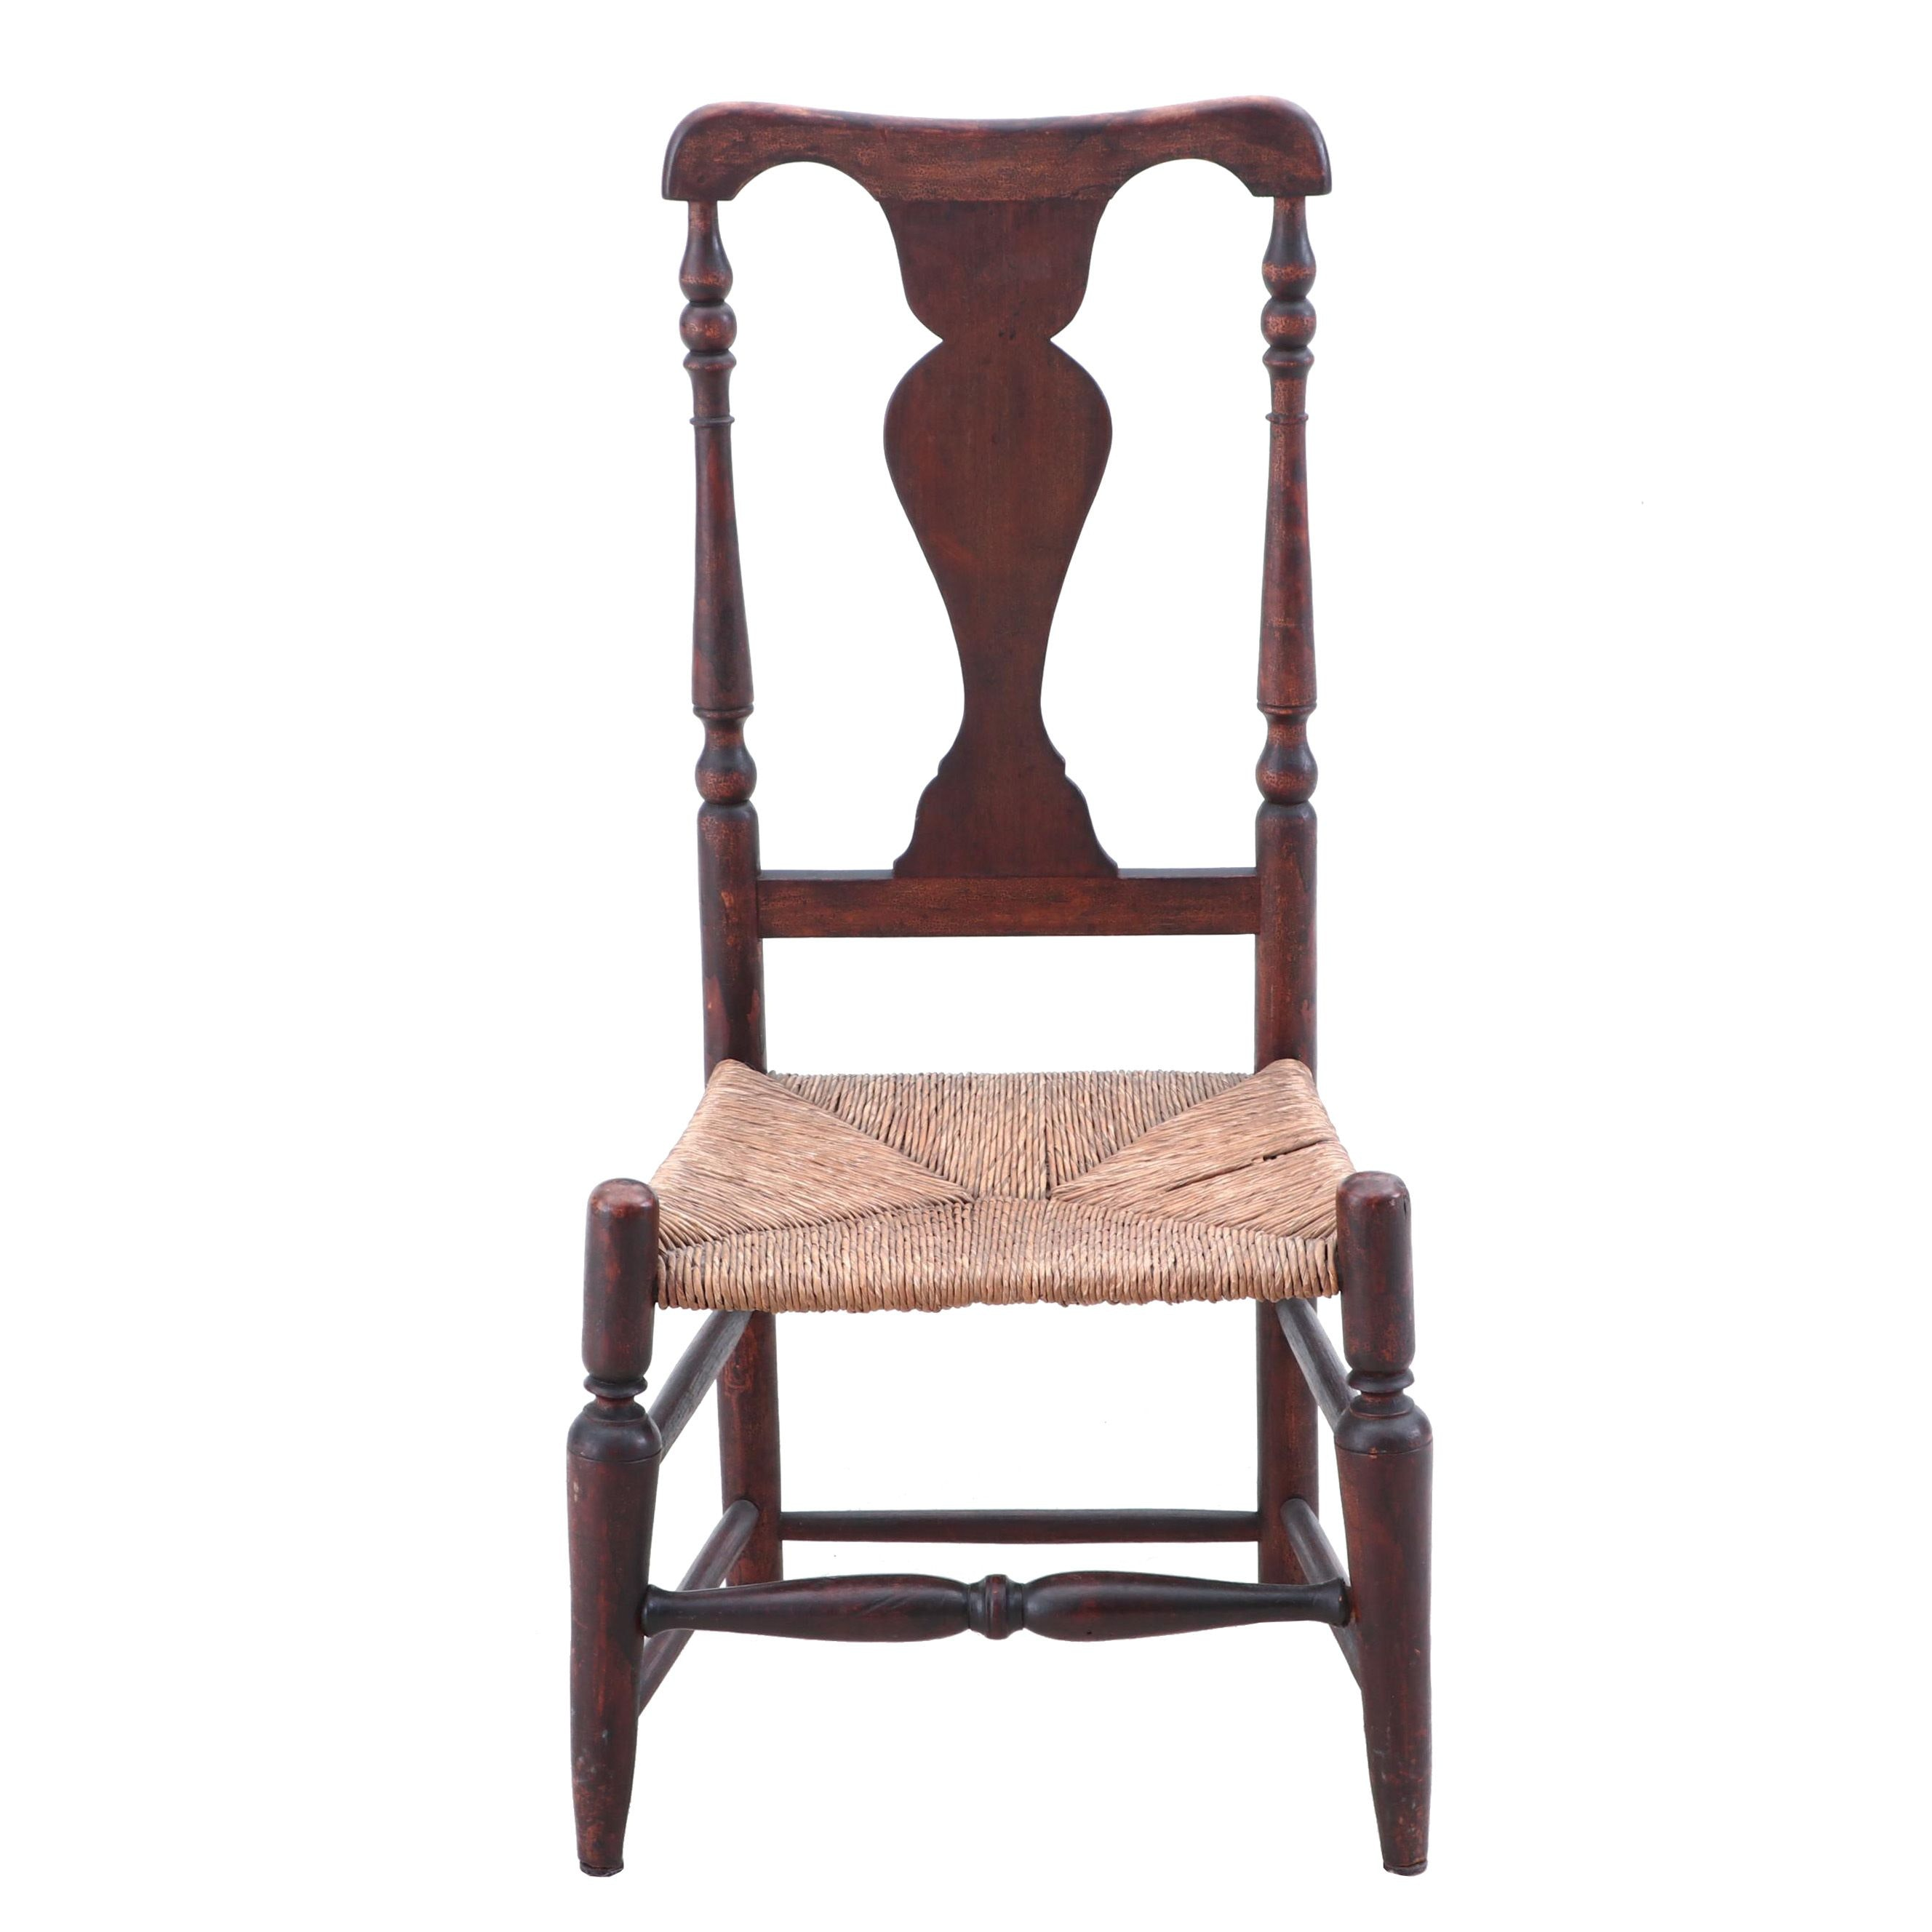 Queen Anne Side Chair with Rush Seat, Late 18th Century